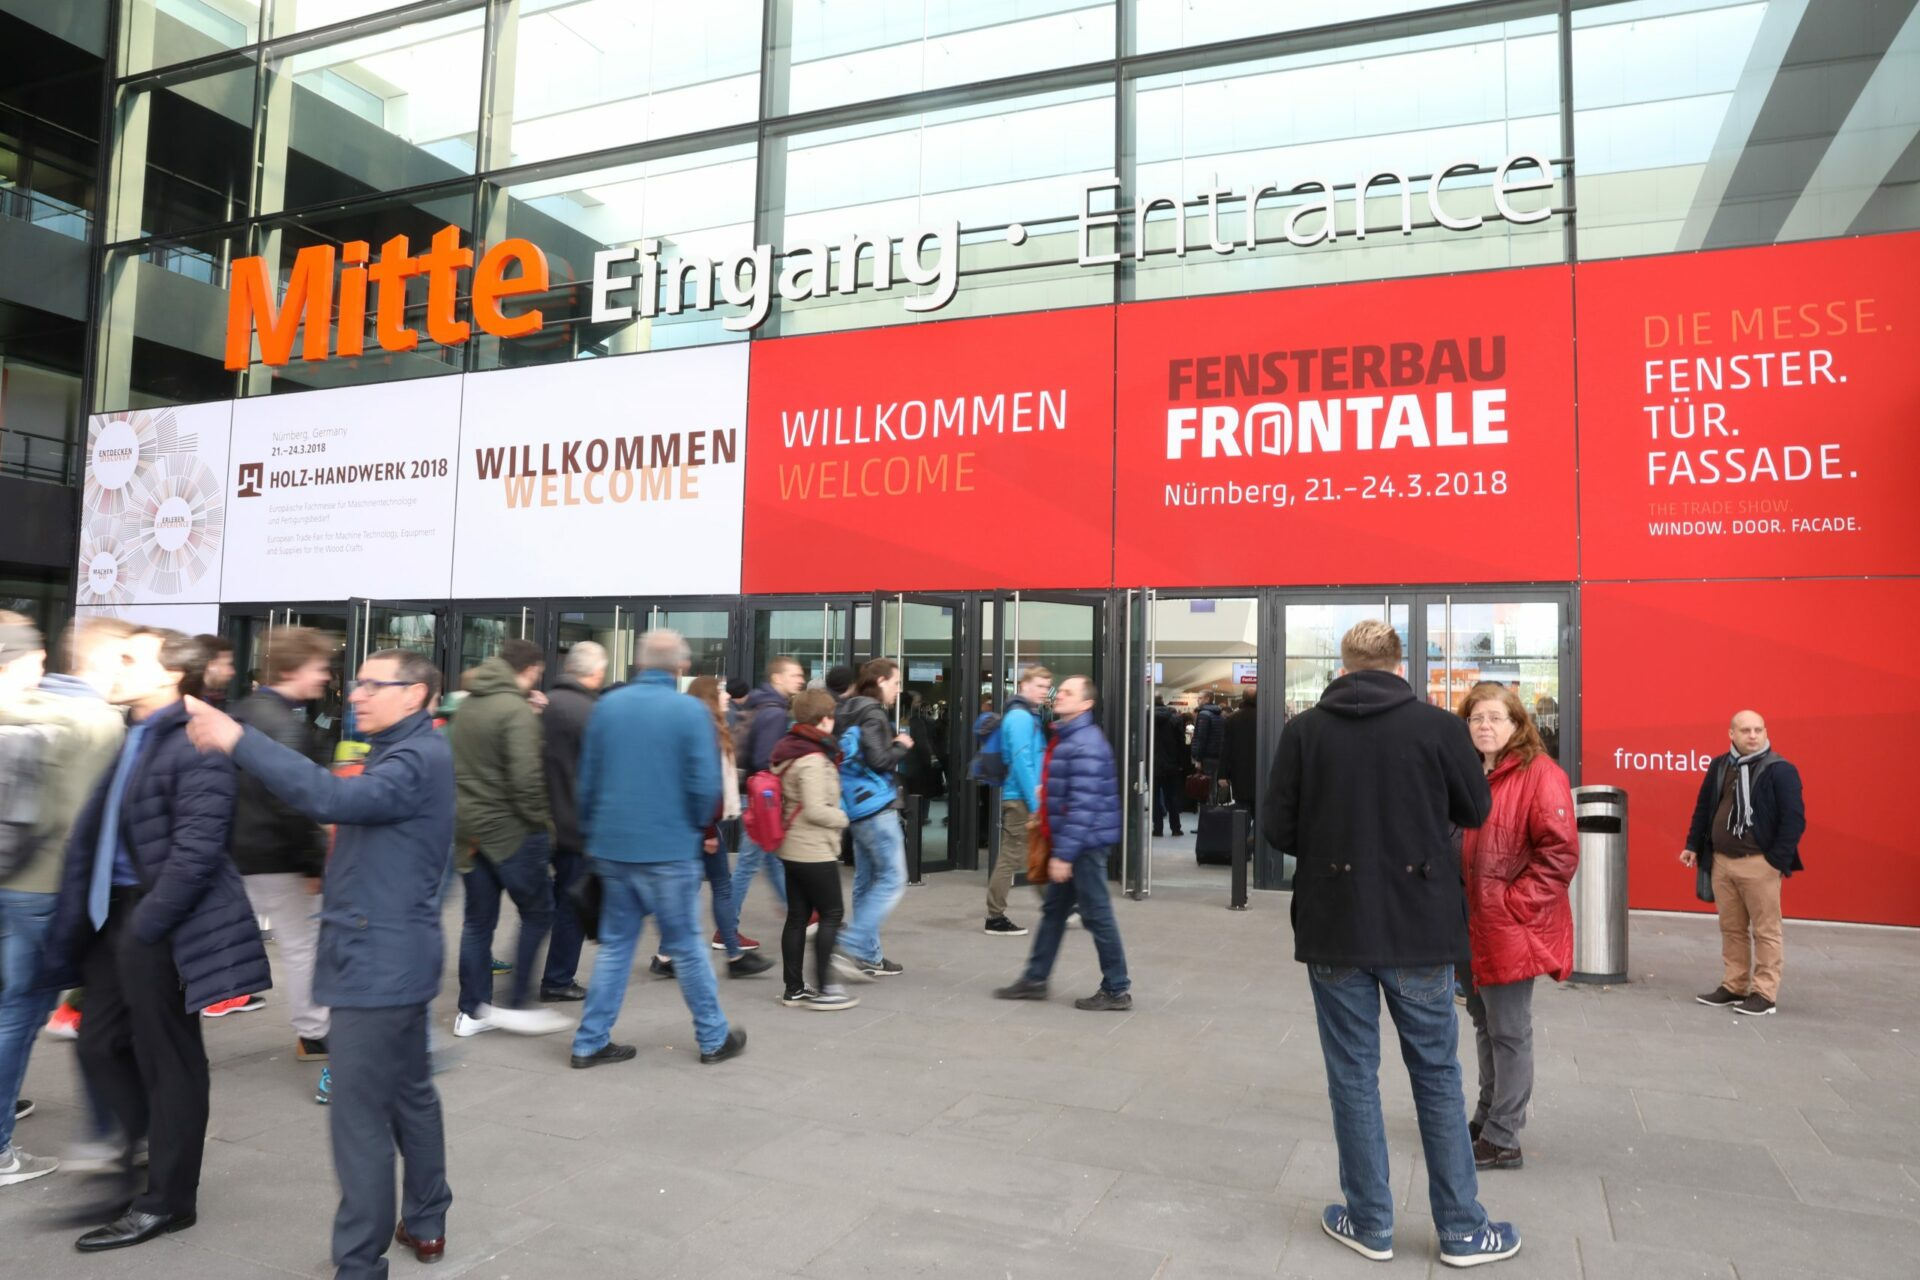 Fensterbau Frontale Creative Resins Door and Window paint